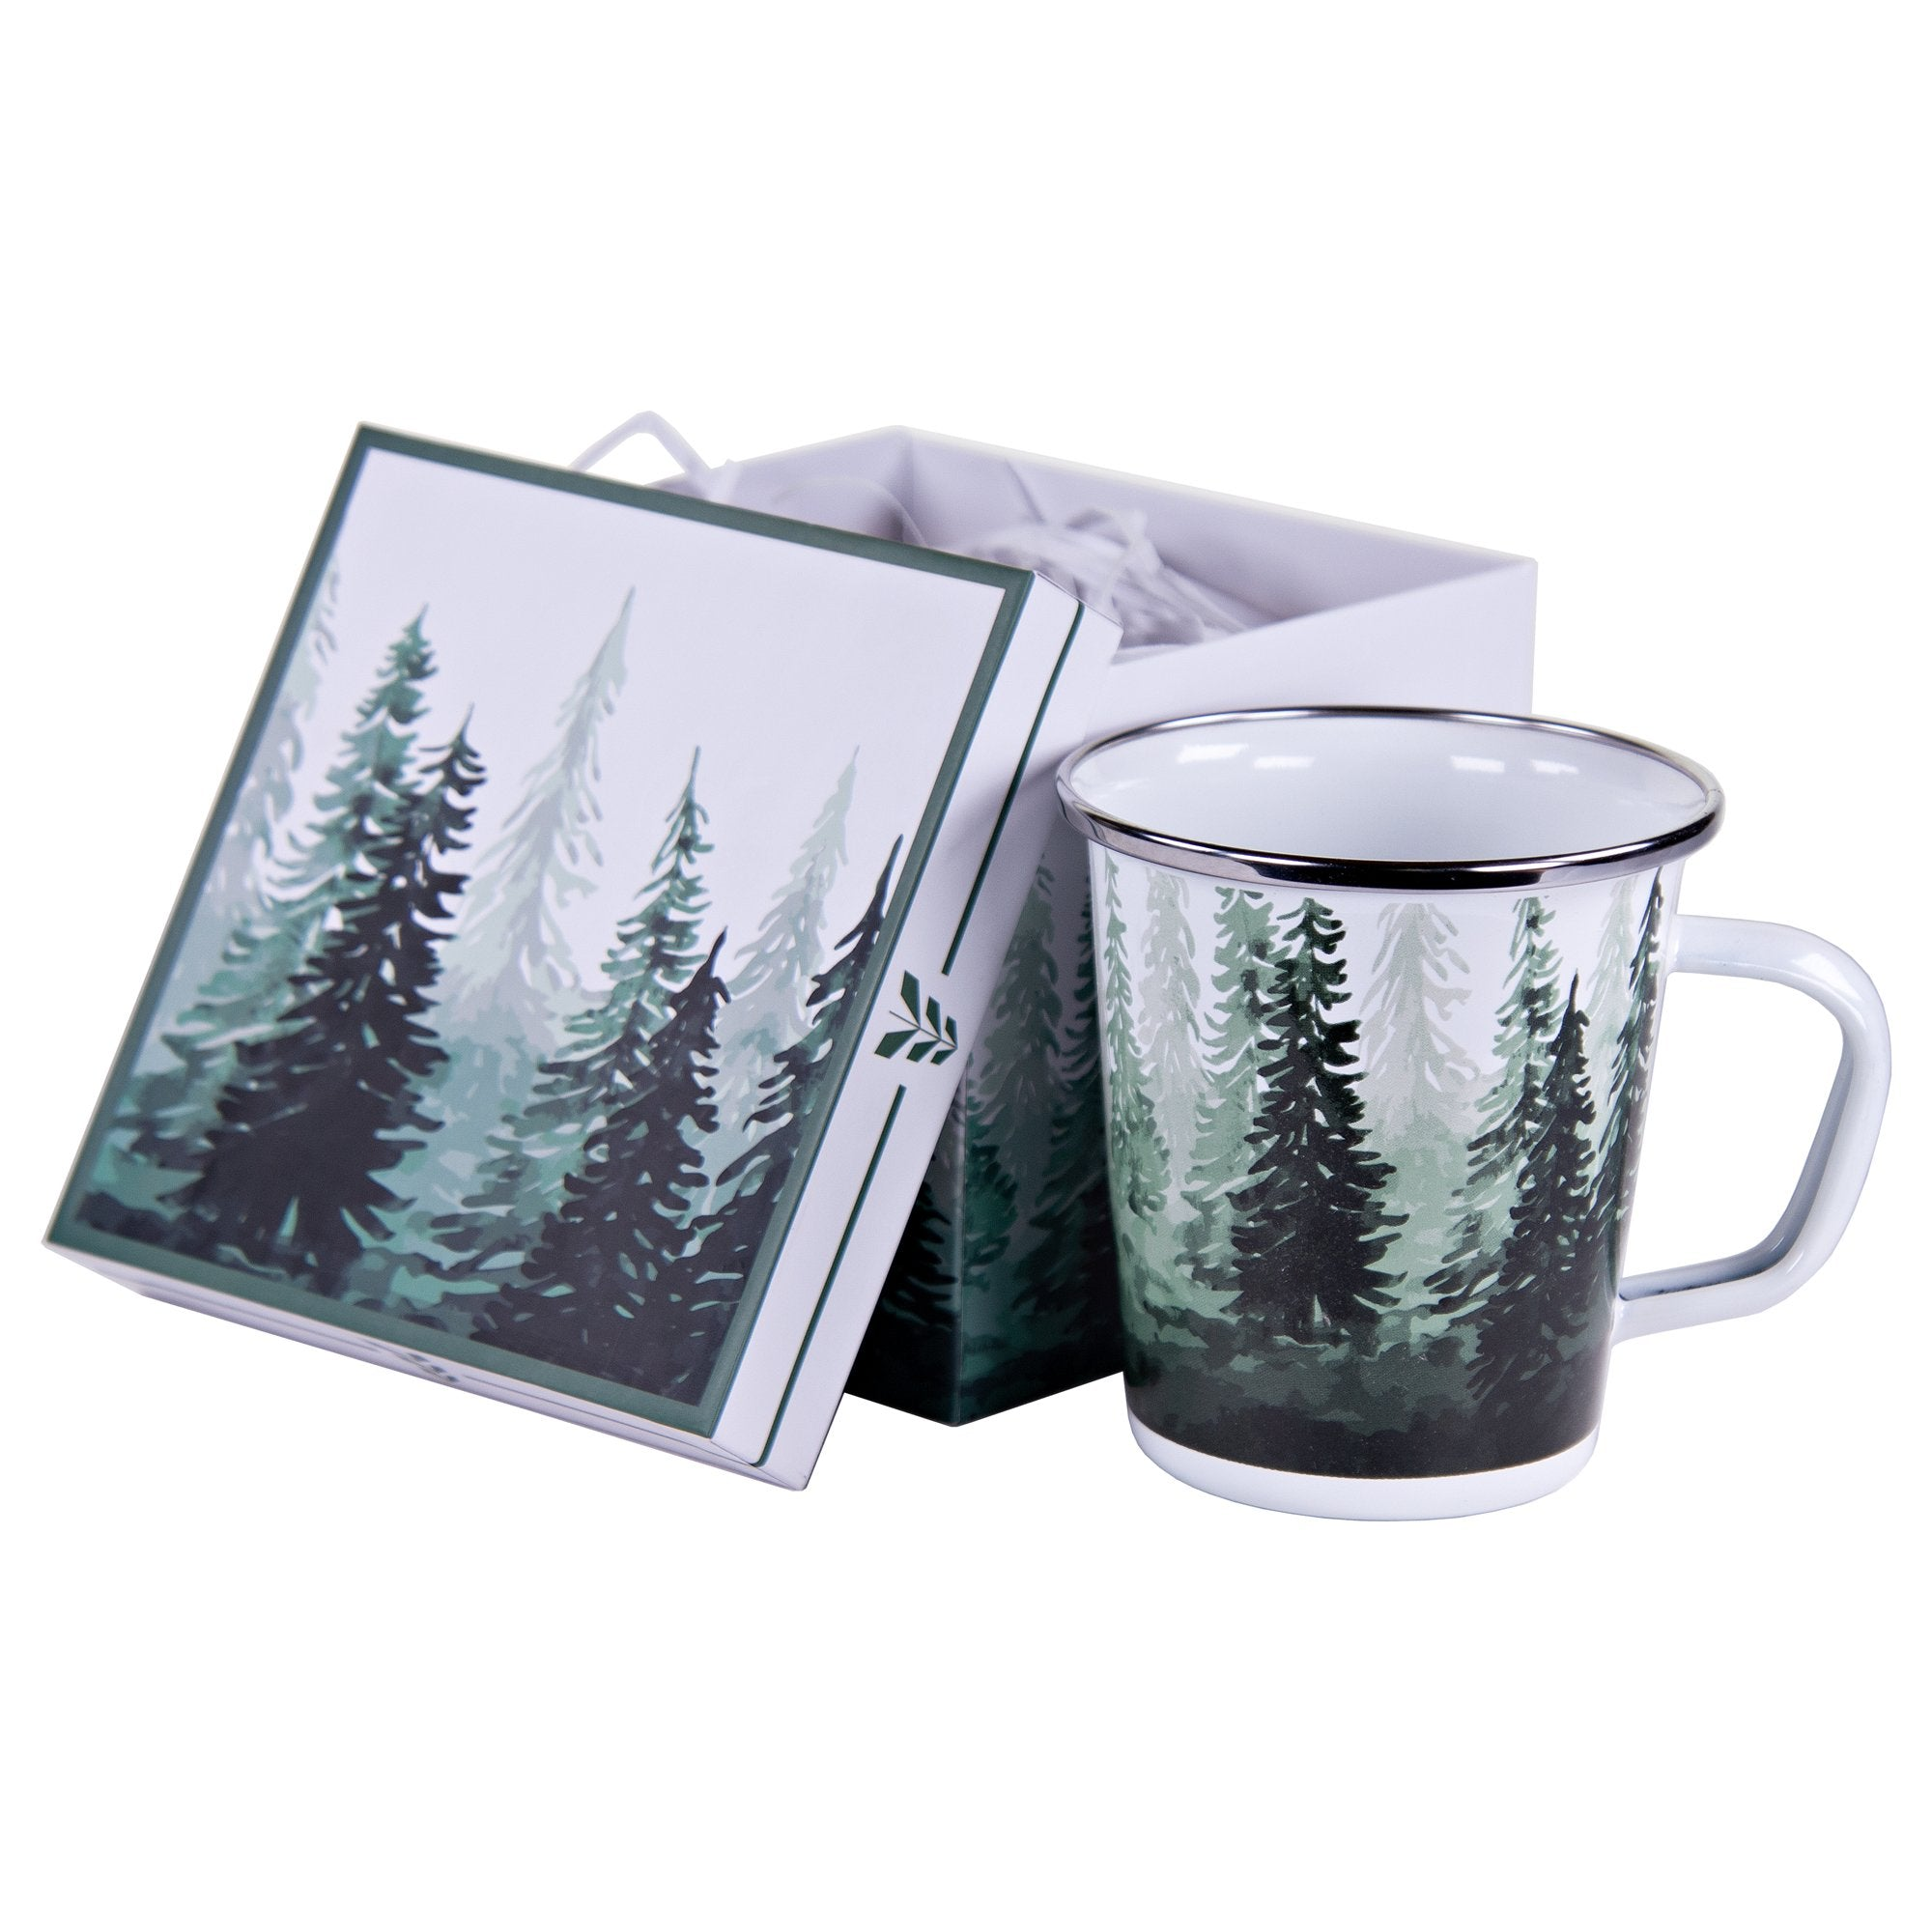 FT86  - Forest Tree Enamelware - Mug Gift Box by Golden Rabbit